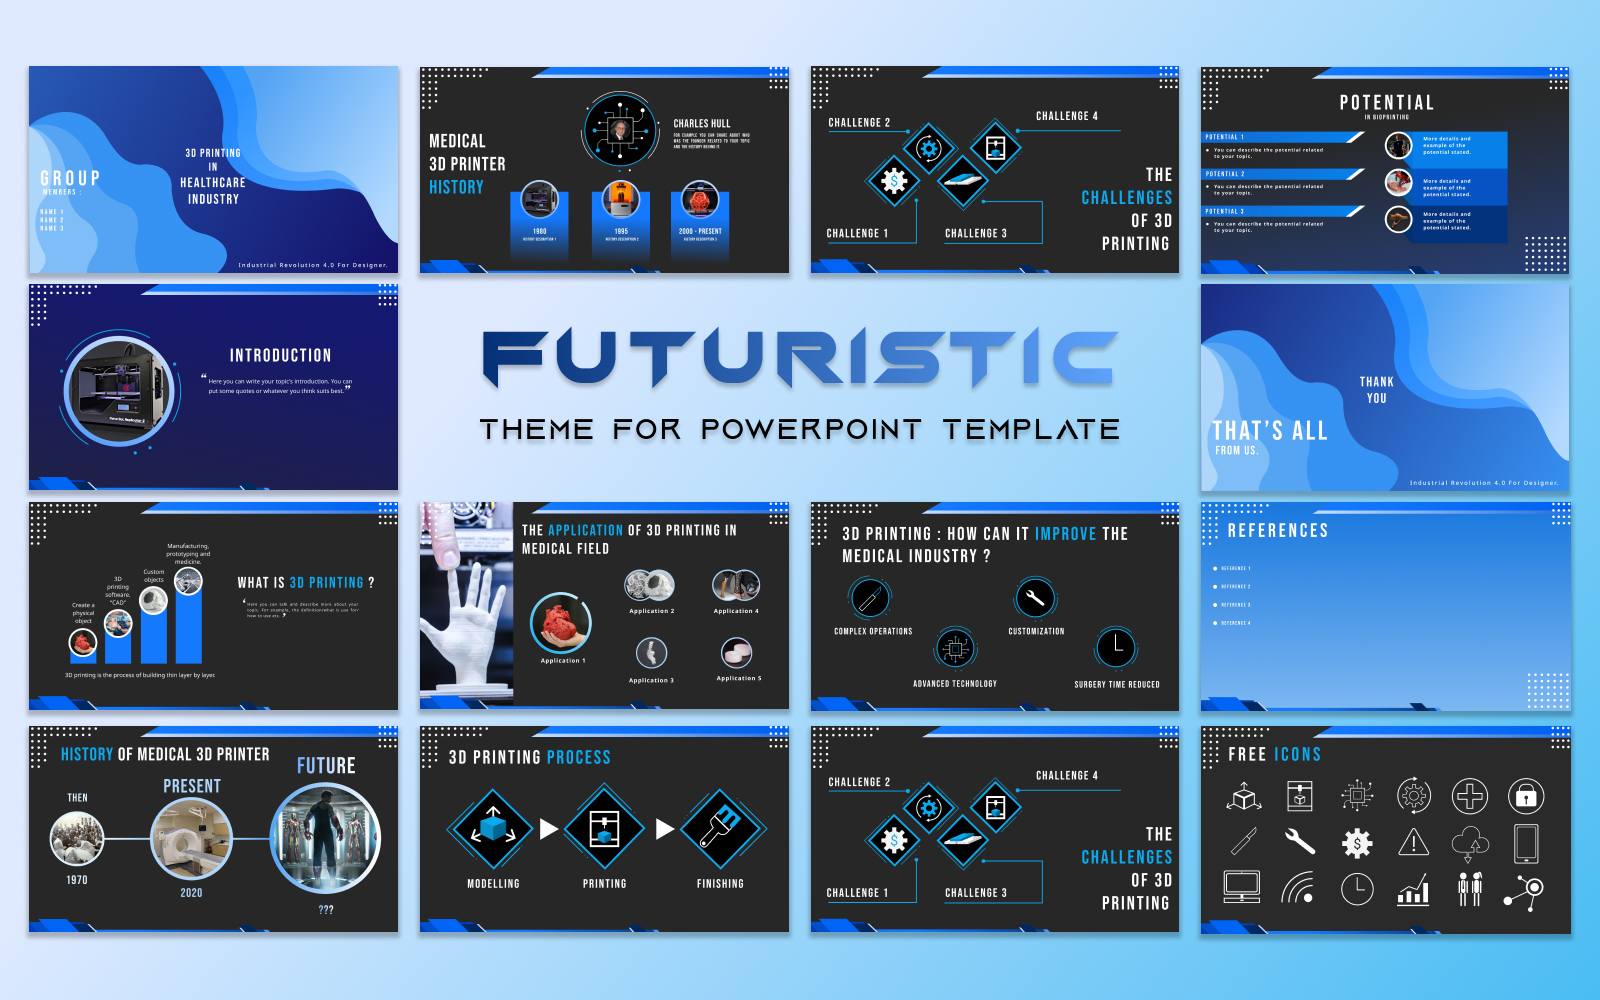 Futuristic Powerpoint Template | 3D Printing in Healthcare Industry